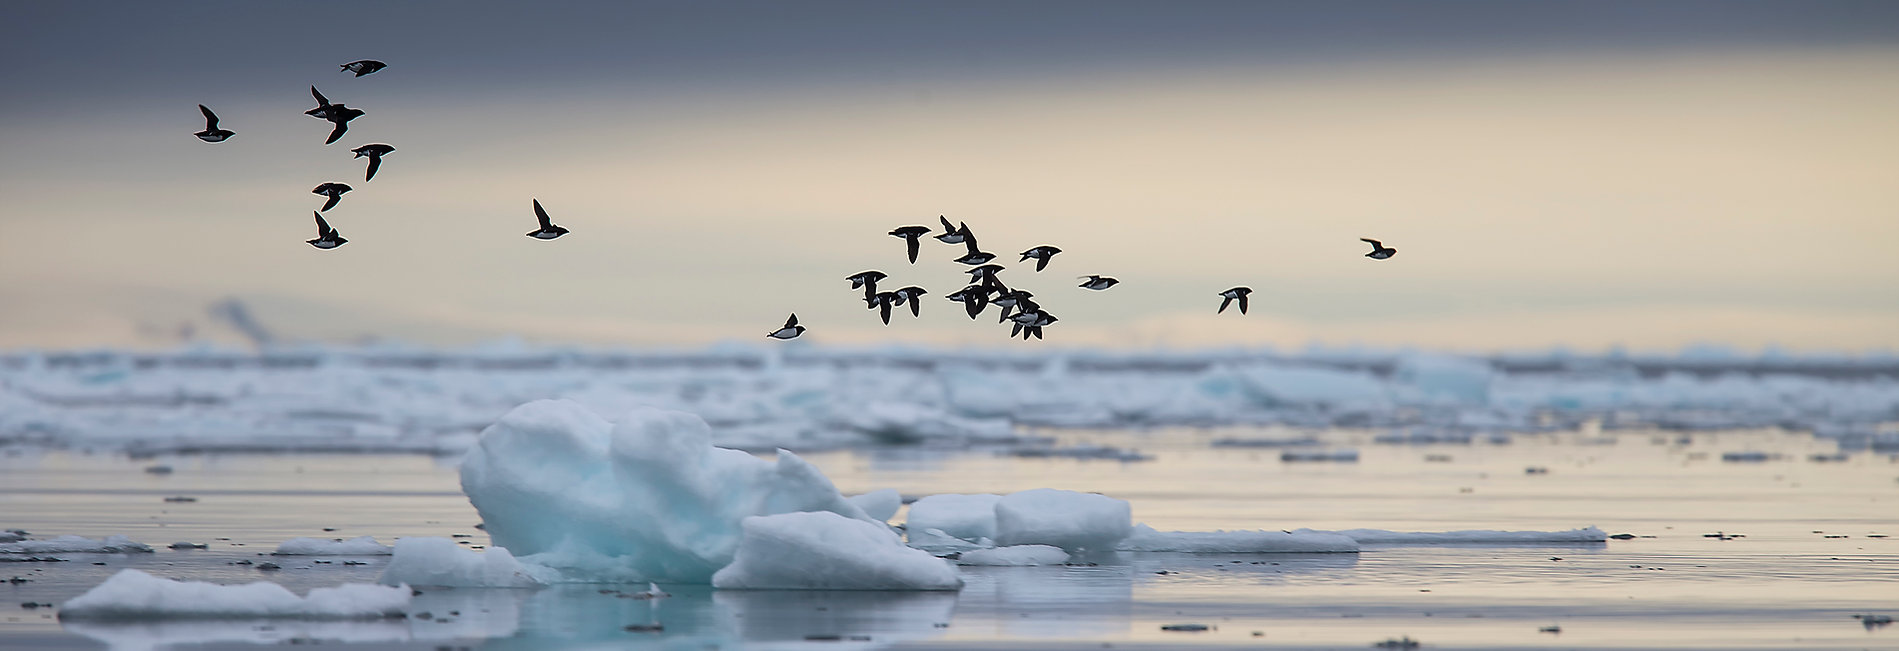 Little auks in the North Water Polynya